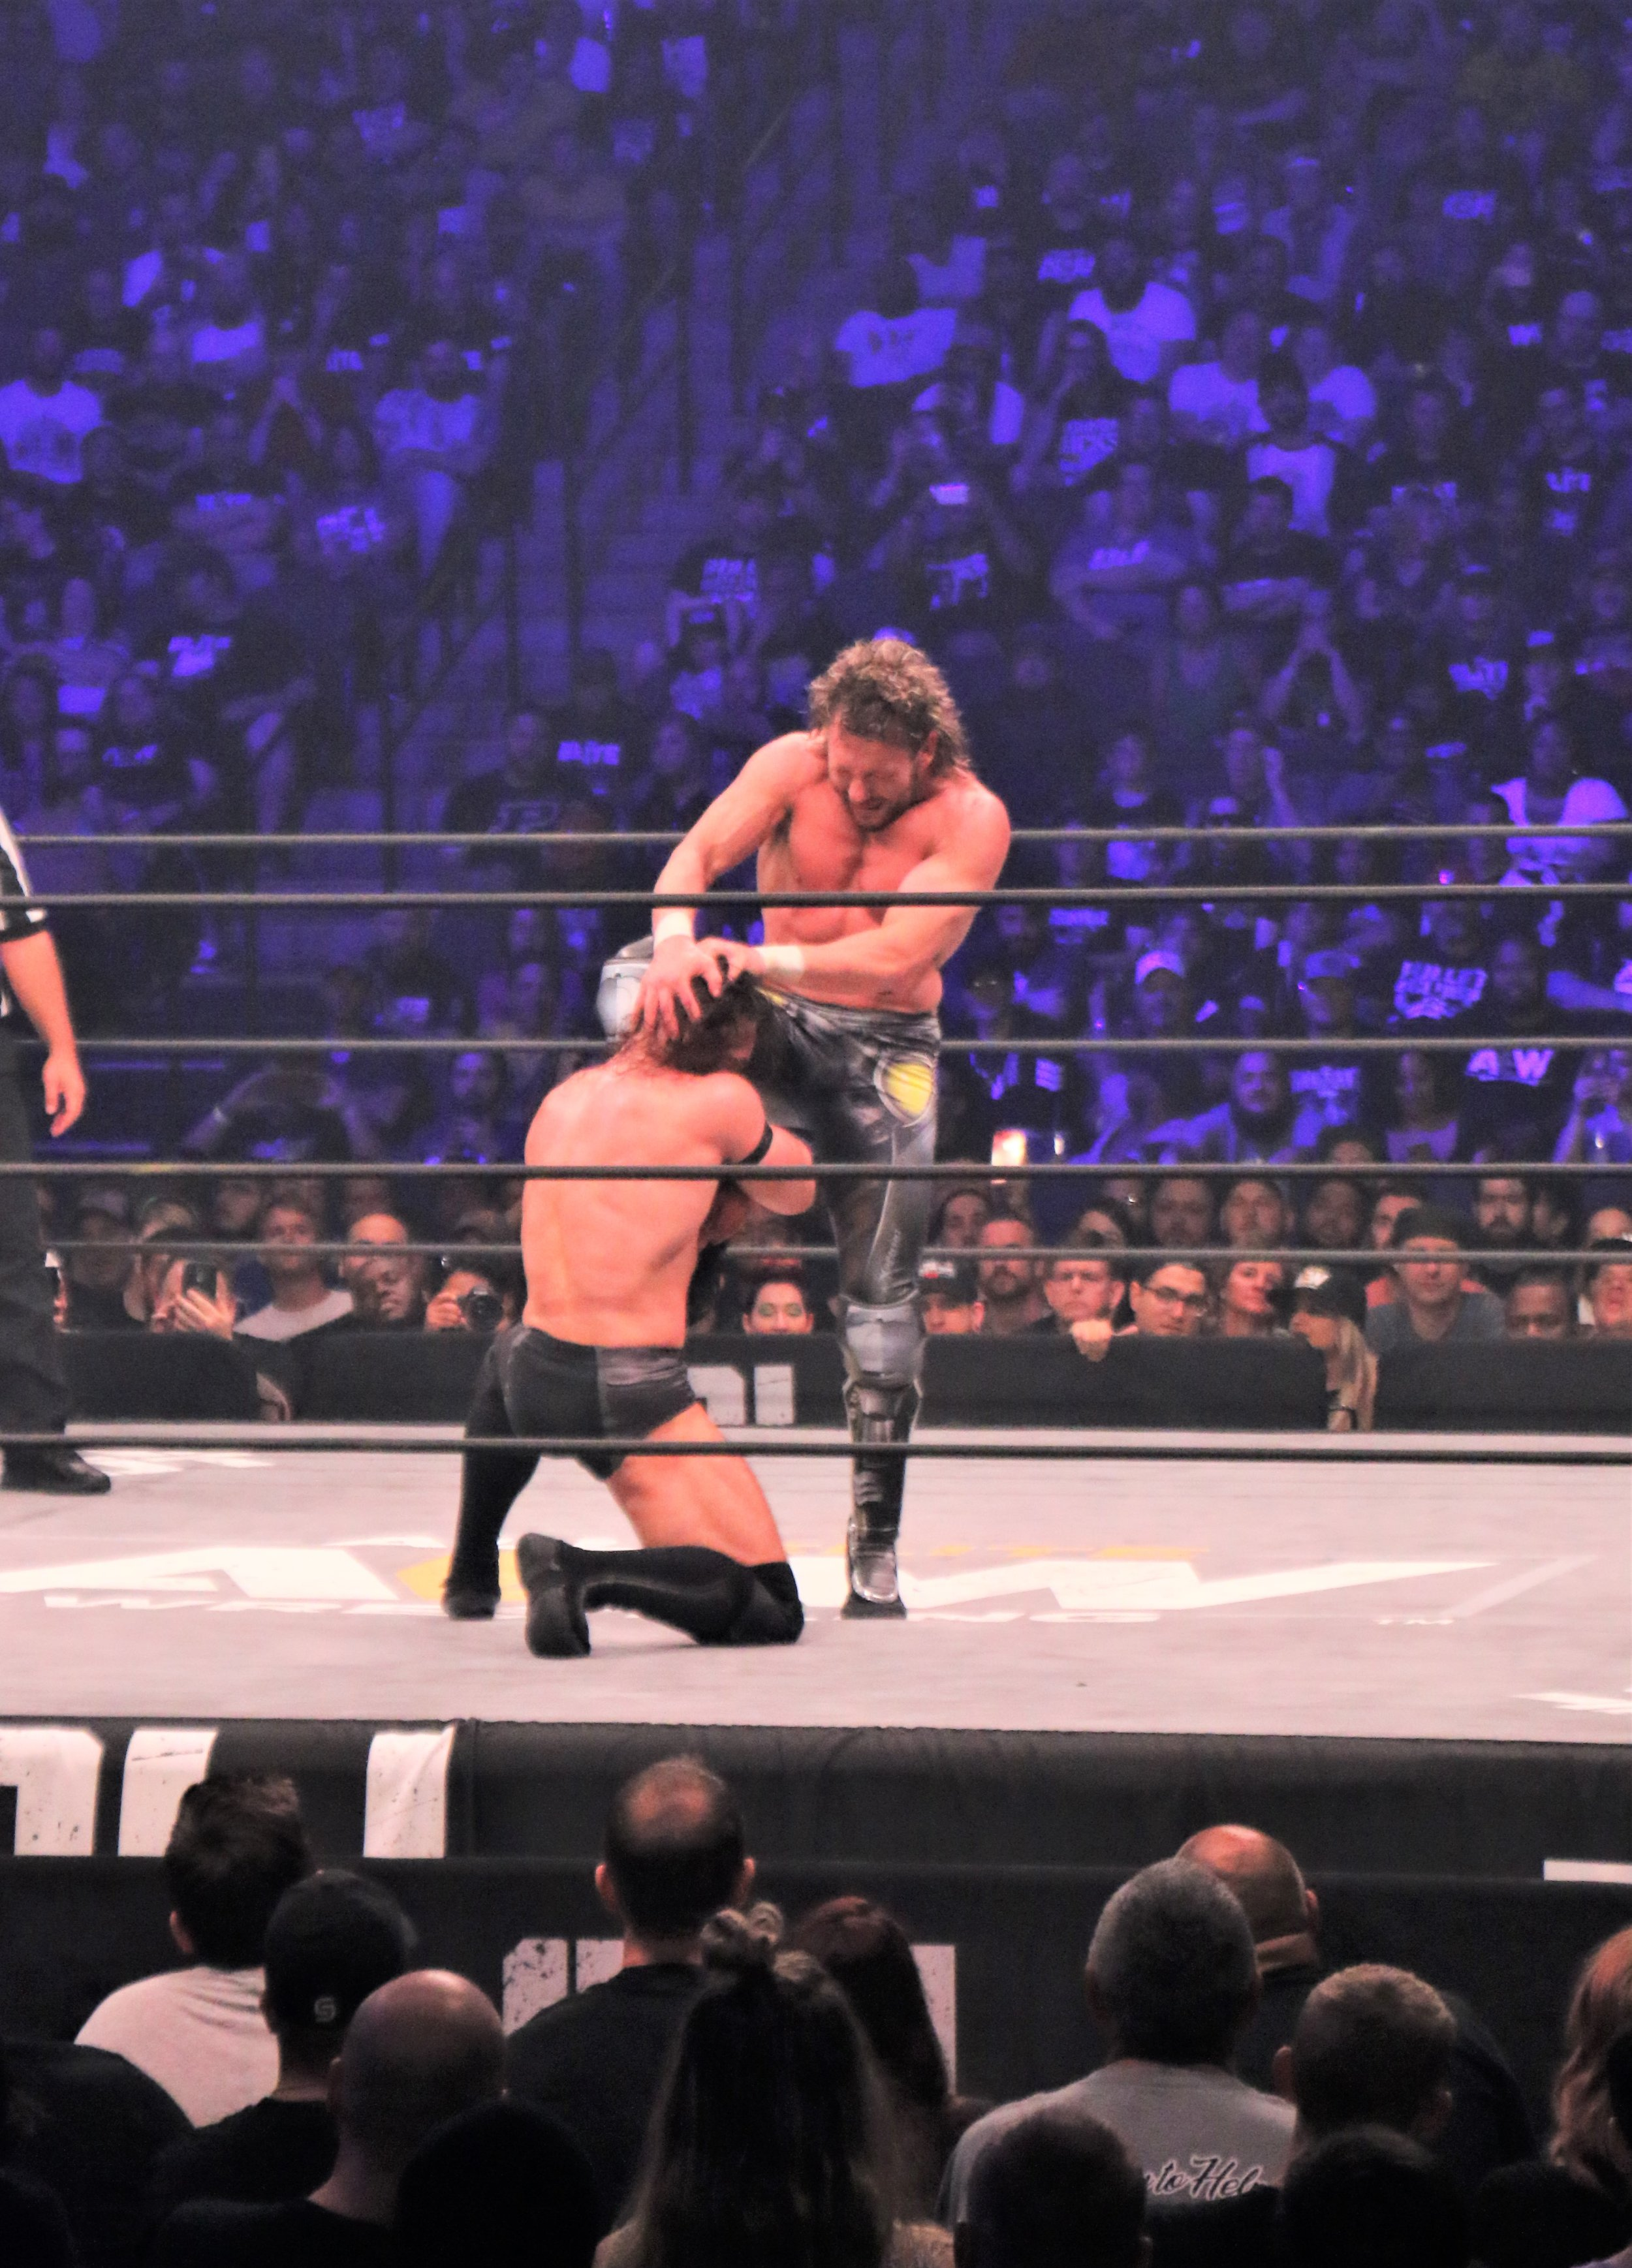 Kenny Omega attempts a knee strike on PAC.